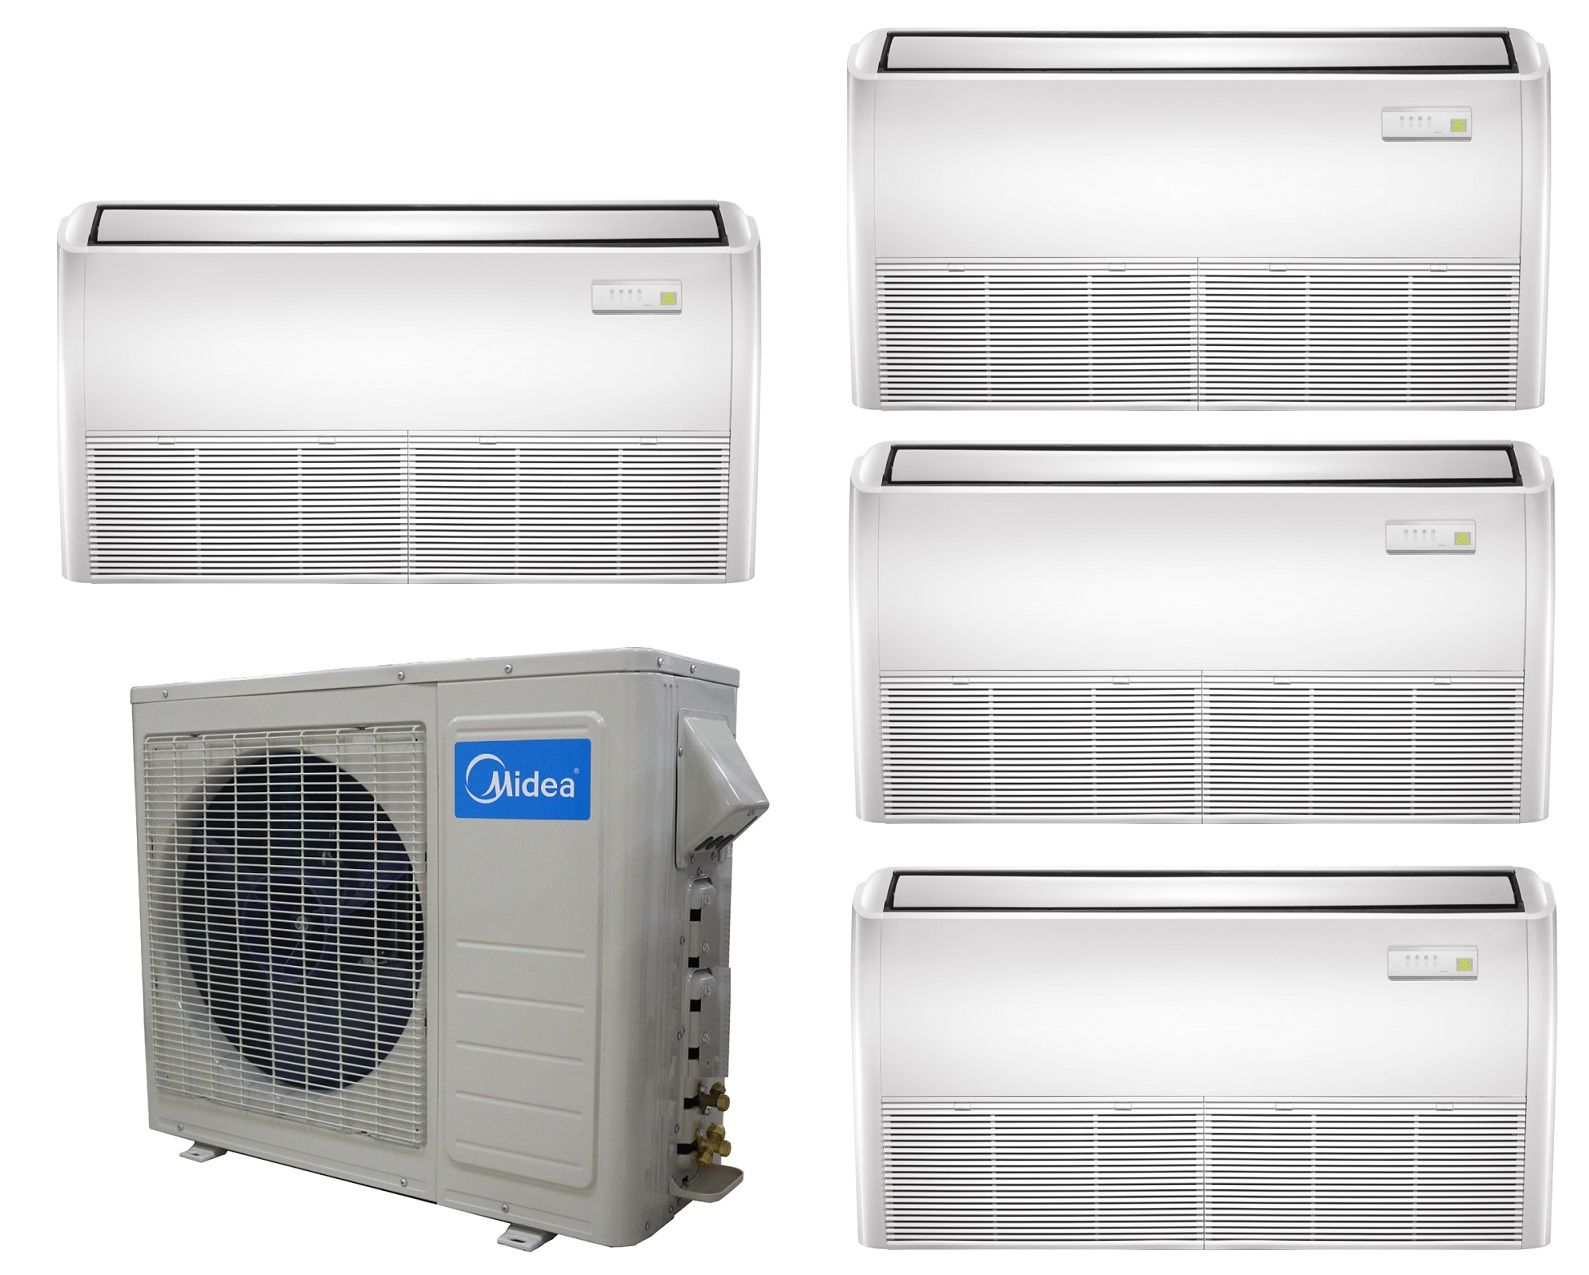 Multi Zone Heat Pump Systems Provide Outdoor Units For Two Three Four And Up To Nine Separate Zones Midea 21 Seer 4 Heat Pump Heat Pump System House Heating